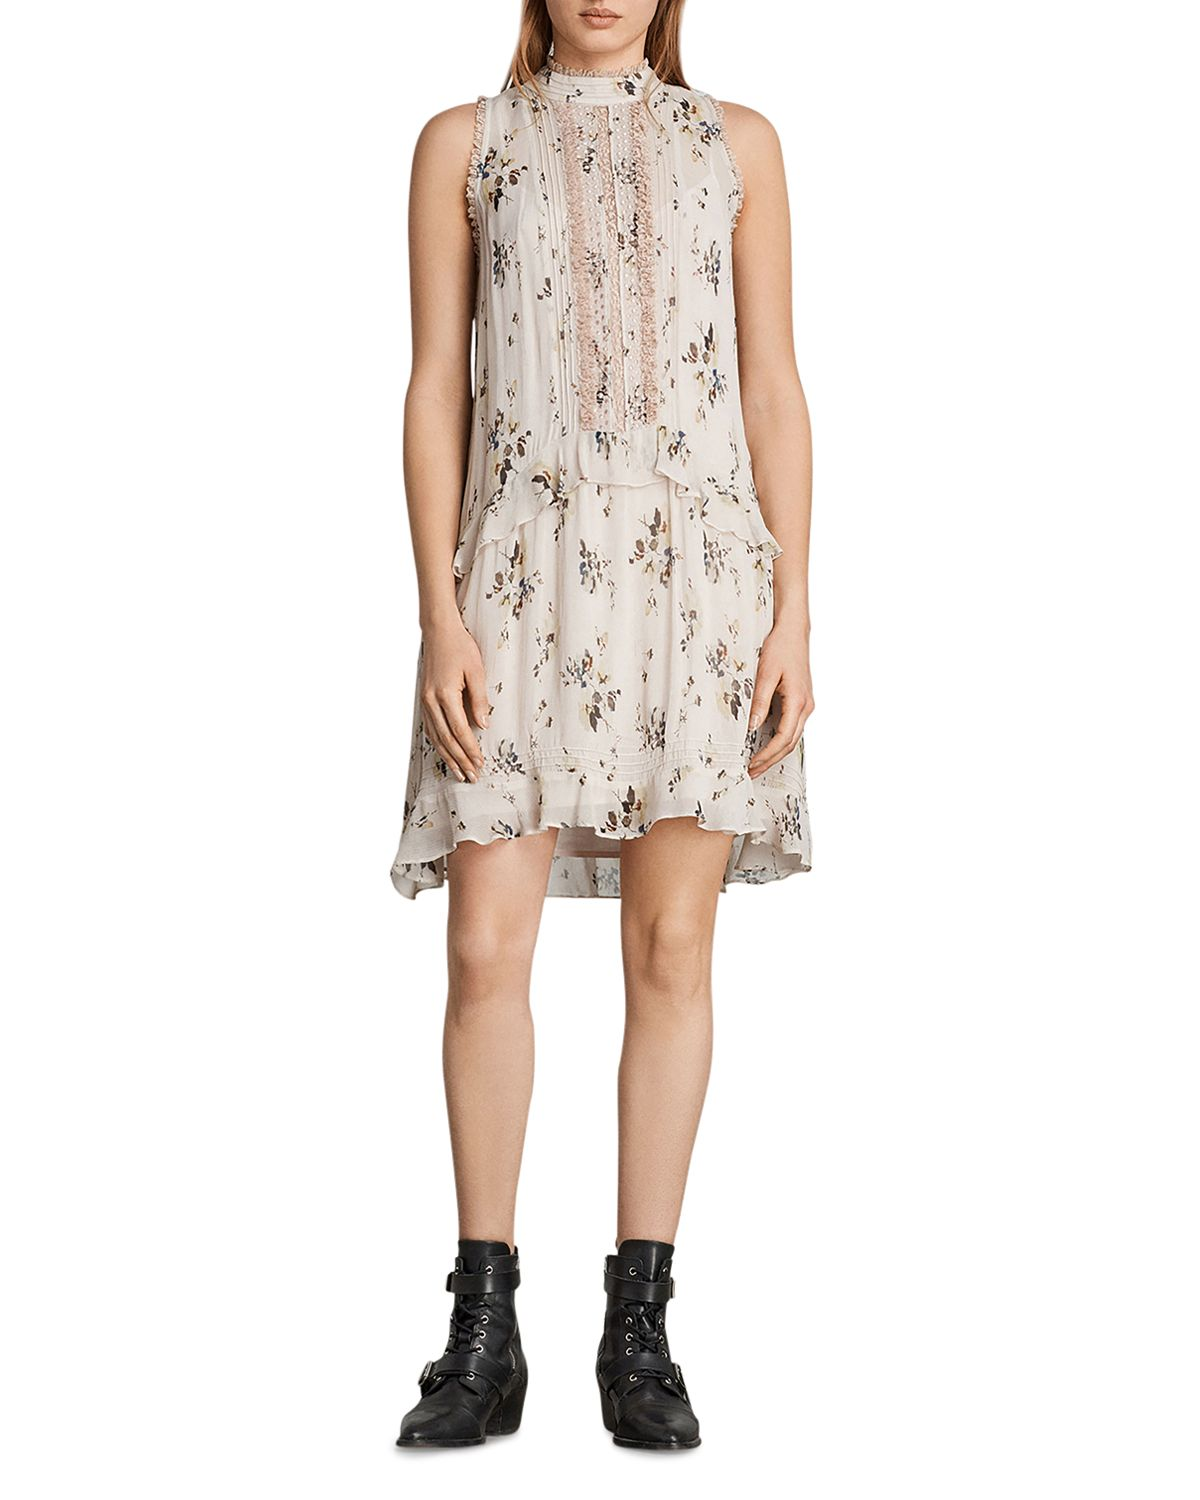 Mina Buttercup Drop Waist Dress by Allsaints